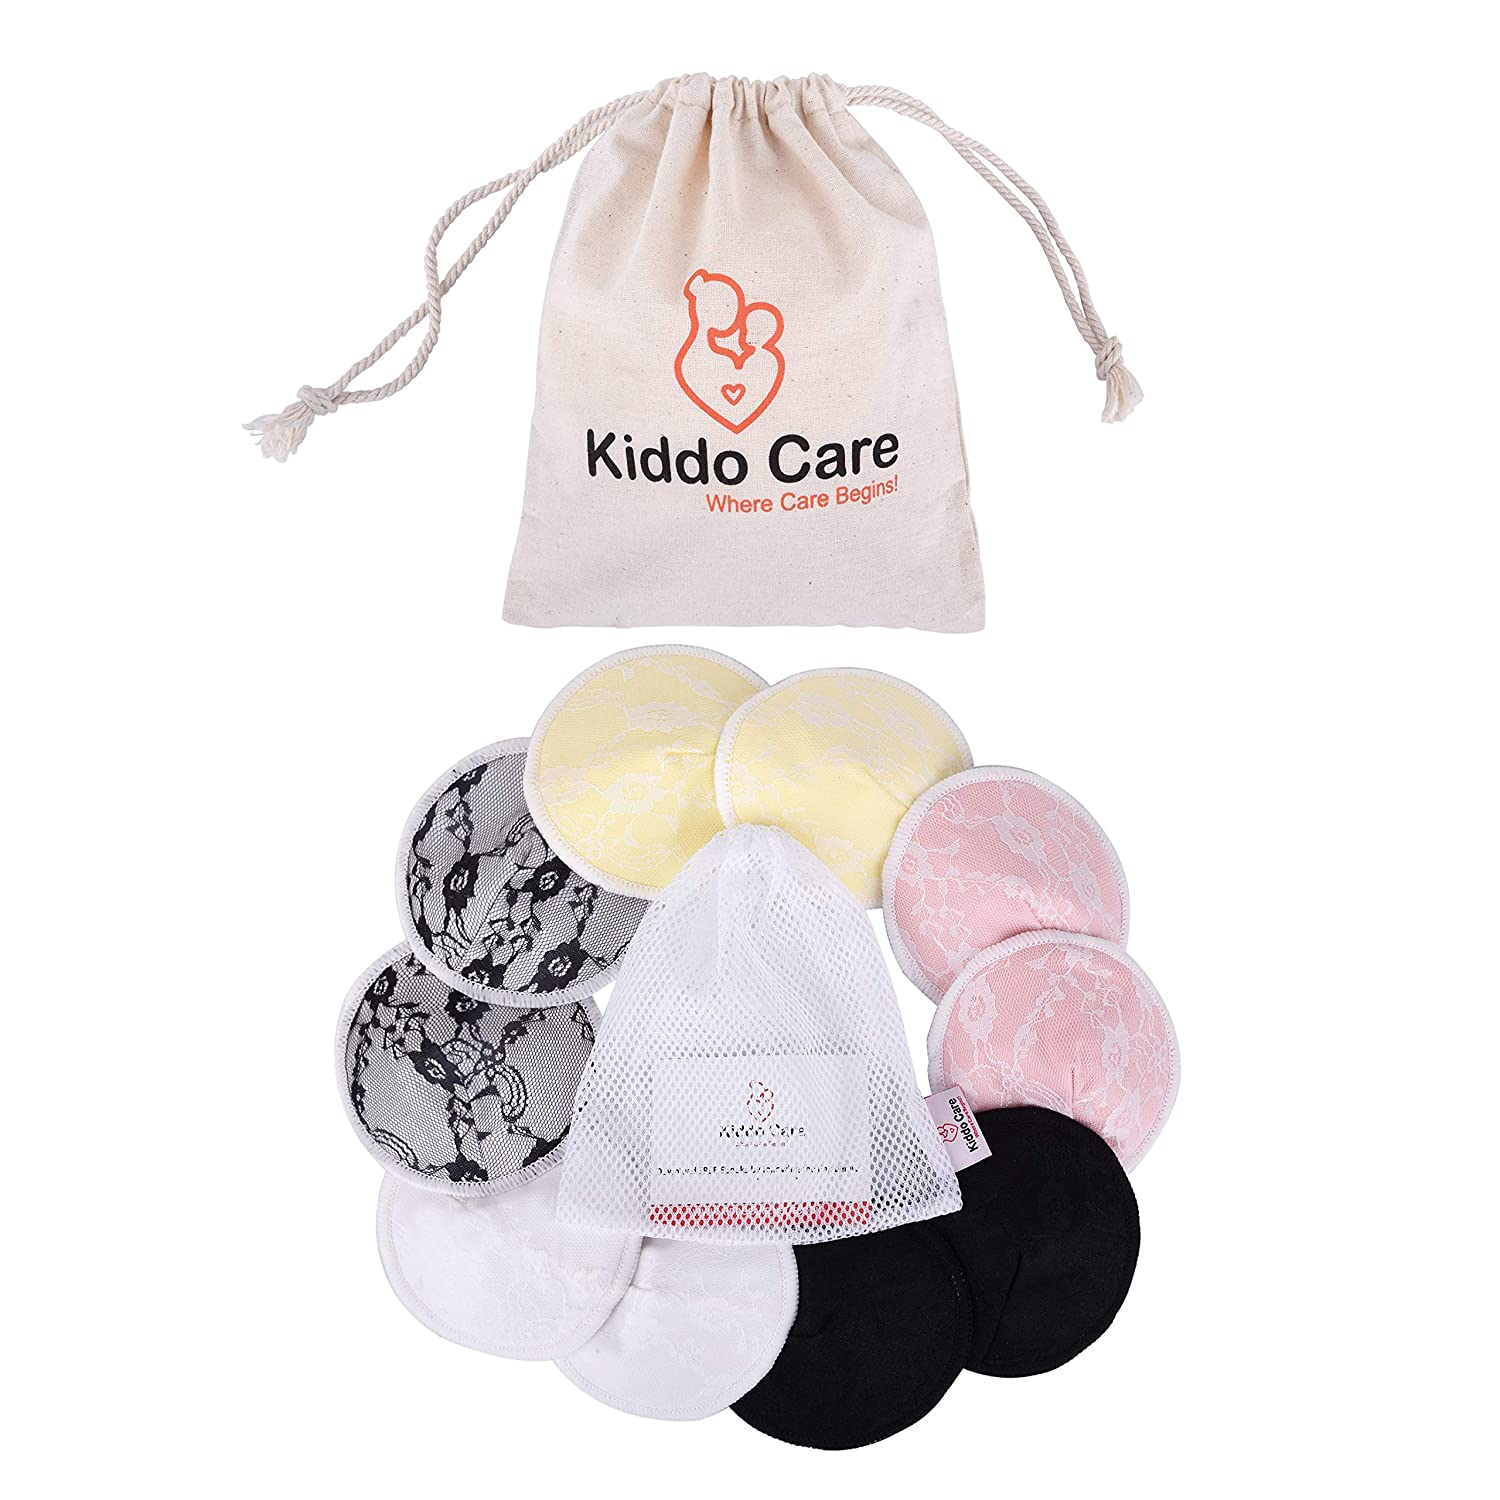 Hypoallergenic Breastfeeding Pads Kiddo Care Washable Nursing Pads Reusable Breast Pads Leak-Proof and Waterproof Contoured Design Absorbent Pads Bra Pads Ultra Soft 5 Pairs